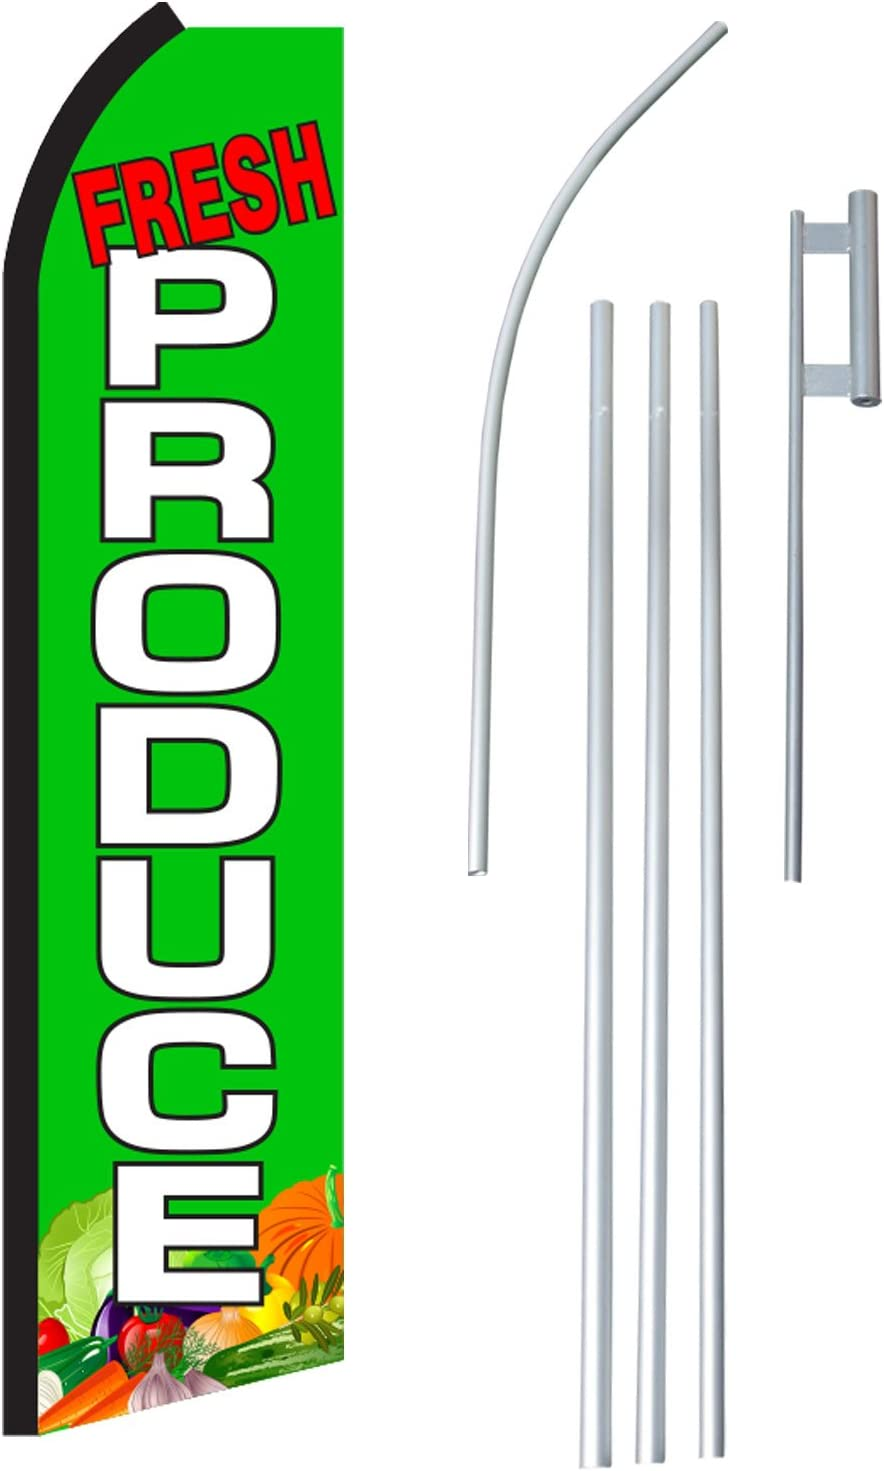 Fresh Produce Complete Flag Kit Includes 12 Swooper Feather Business Flag with 15-Foot Anodized Aluminum Flagpole and Ground Spike NEOPlex